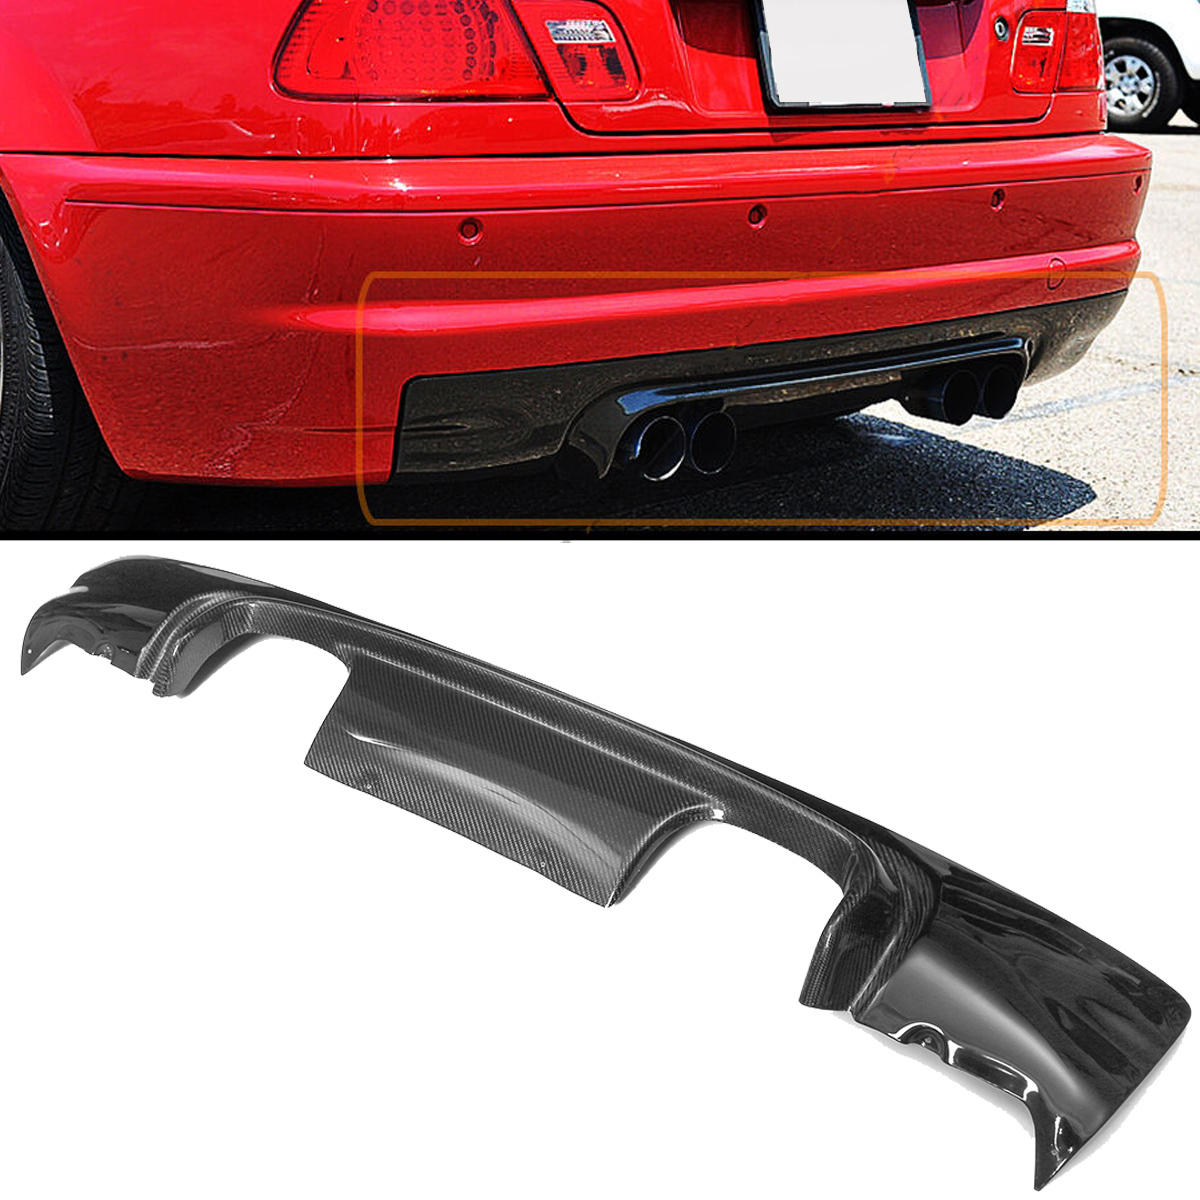 Real Carbon Fiber Rear Bumper Diffuser CSL Style 2-Tone For BMW E46 M3 COUPE 2002-2006 from Banggood